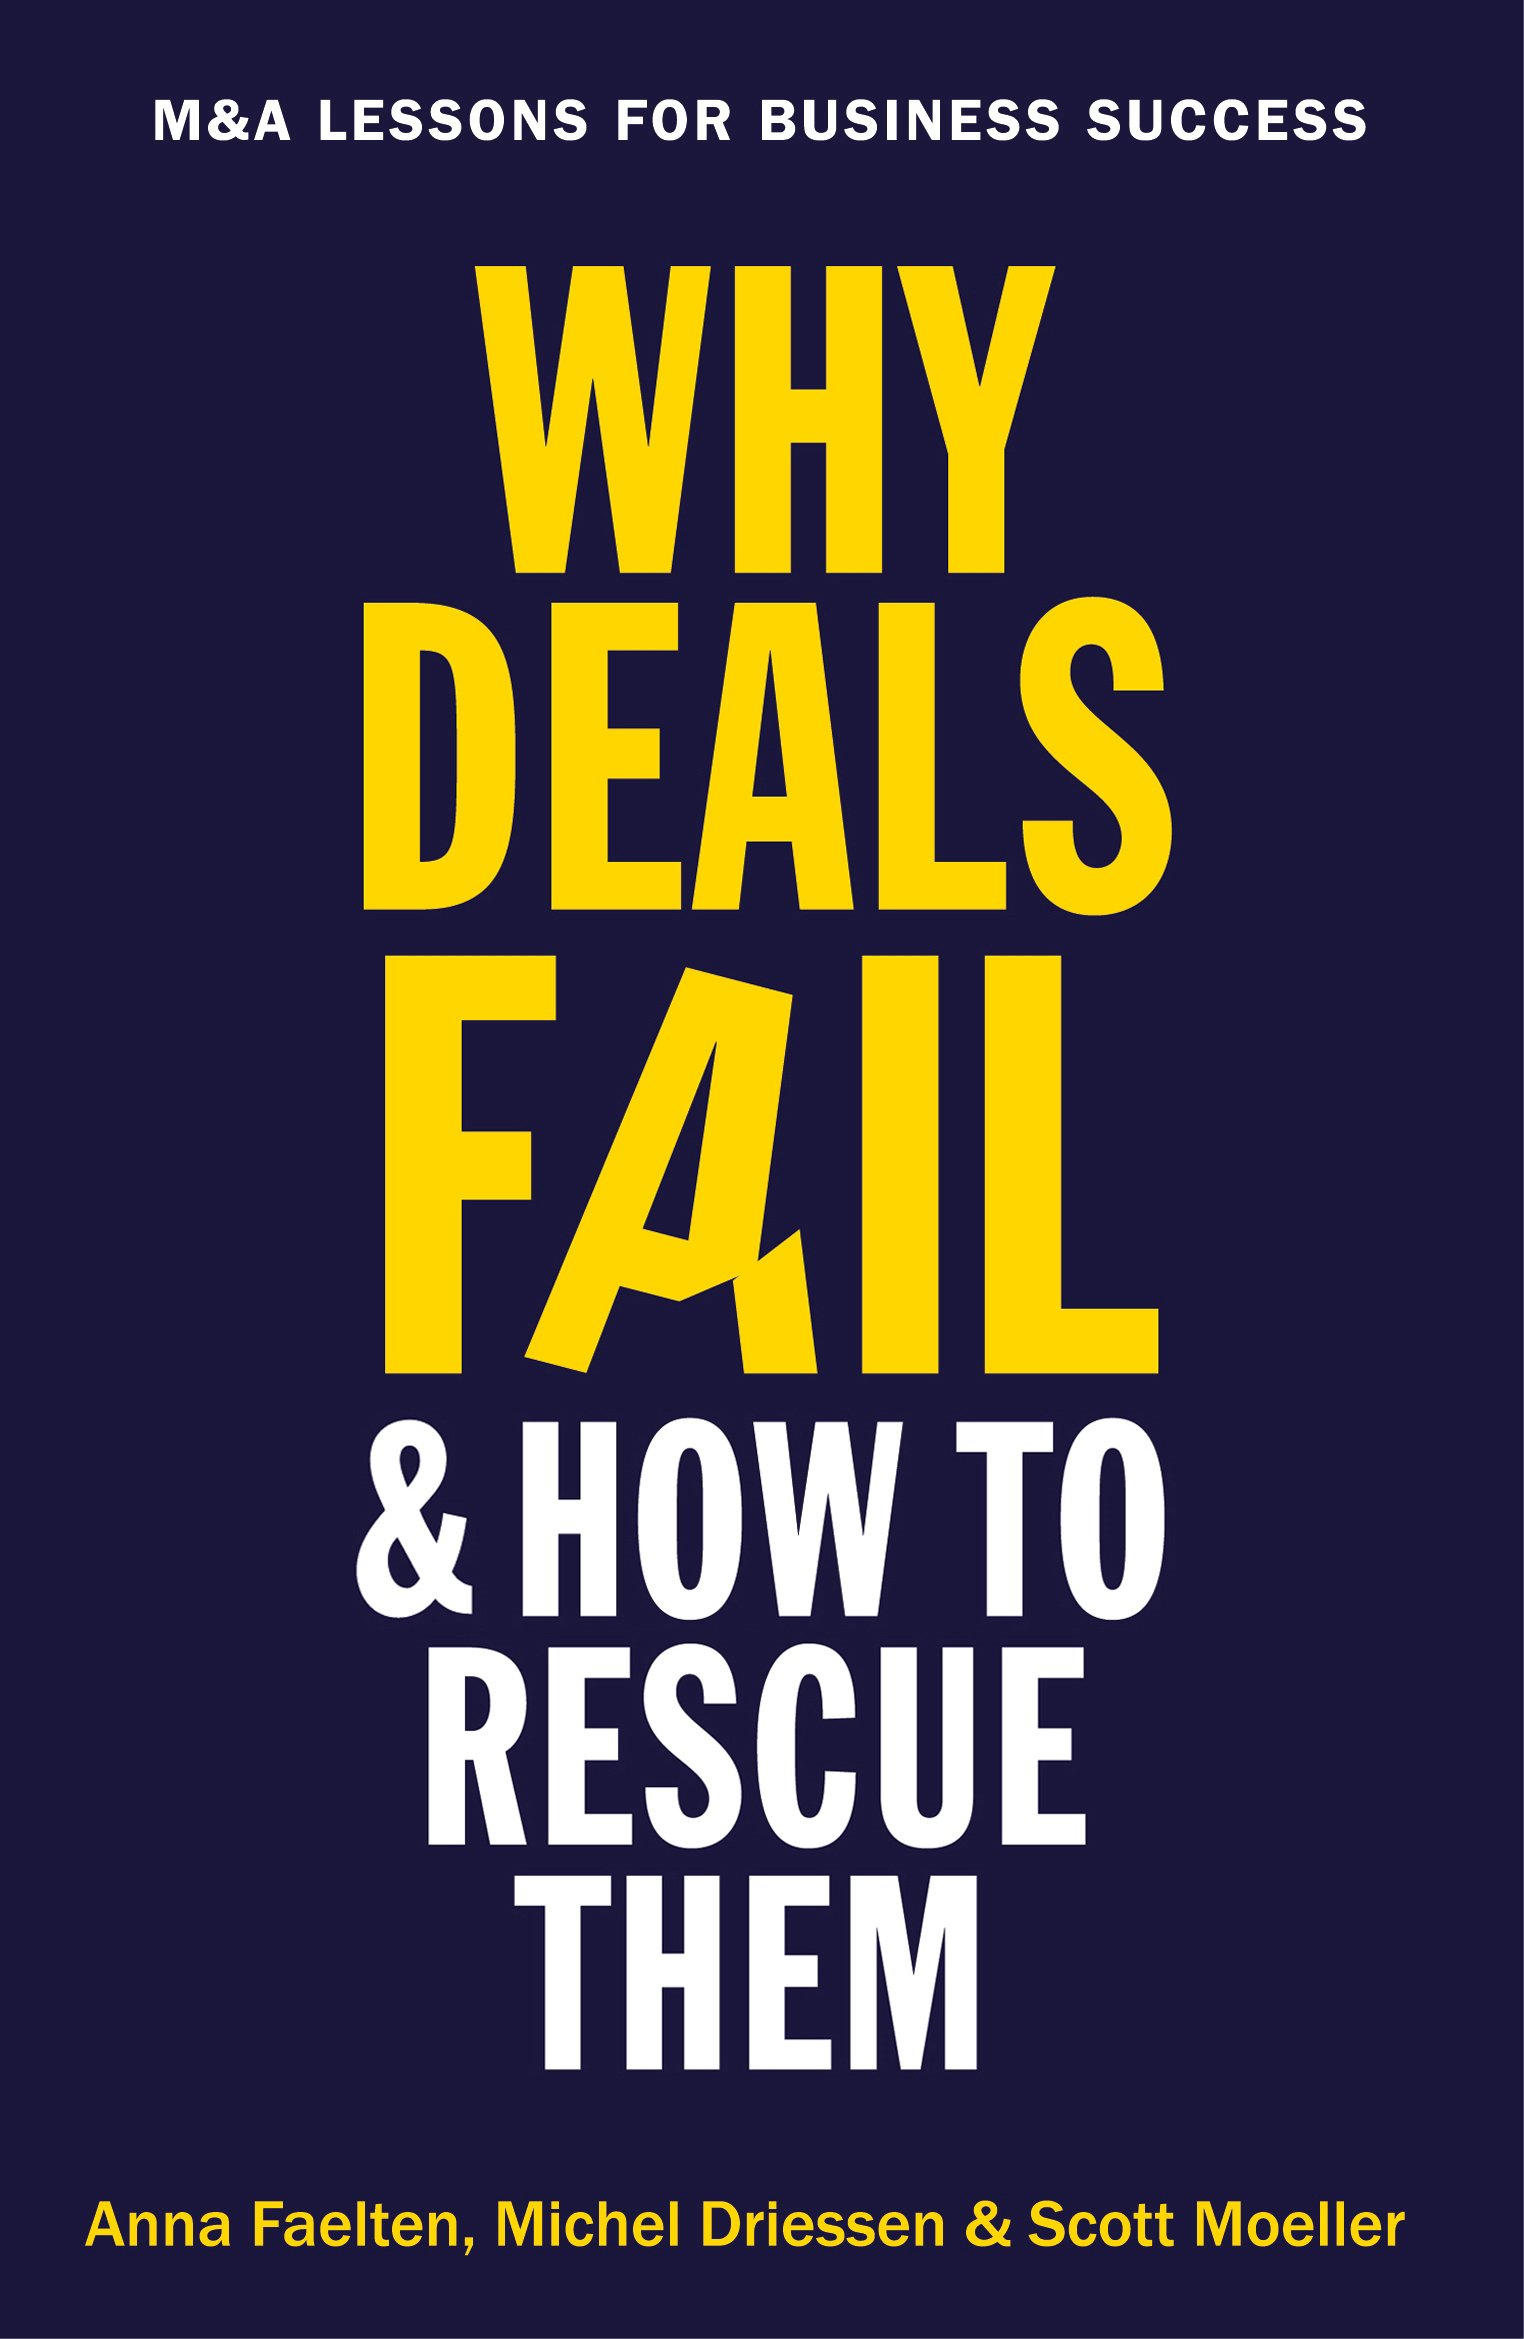 Image OfWhy Deals Fail And How To Rescue Them: M&A Lessons For Business Success